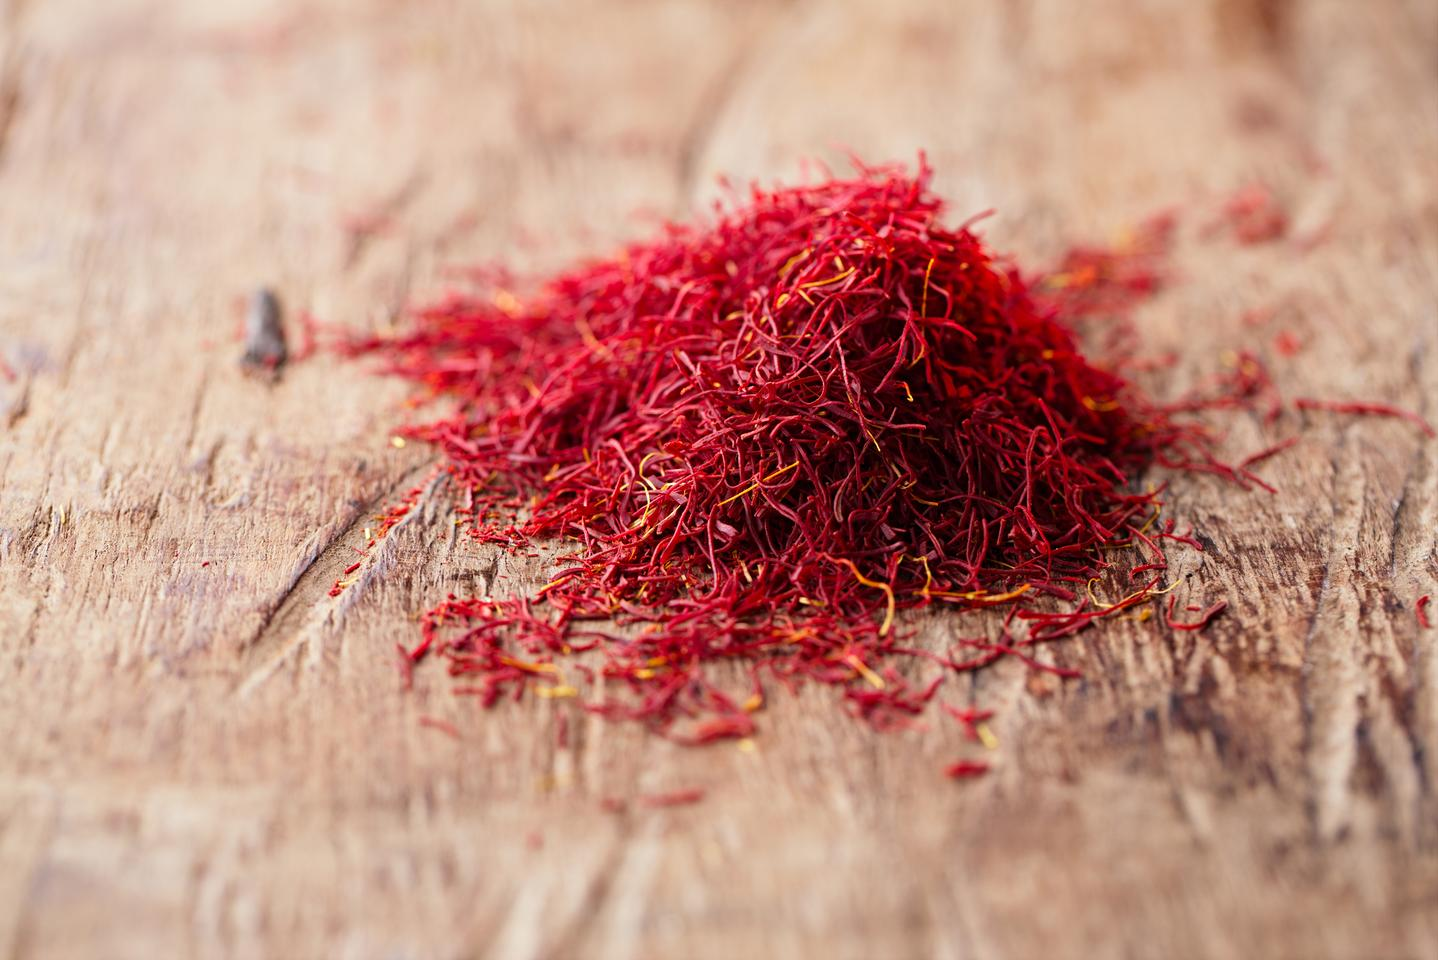 Preliminary Study Finds Saffron Extract Could Improve Sleep